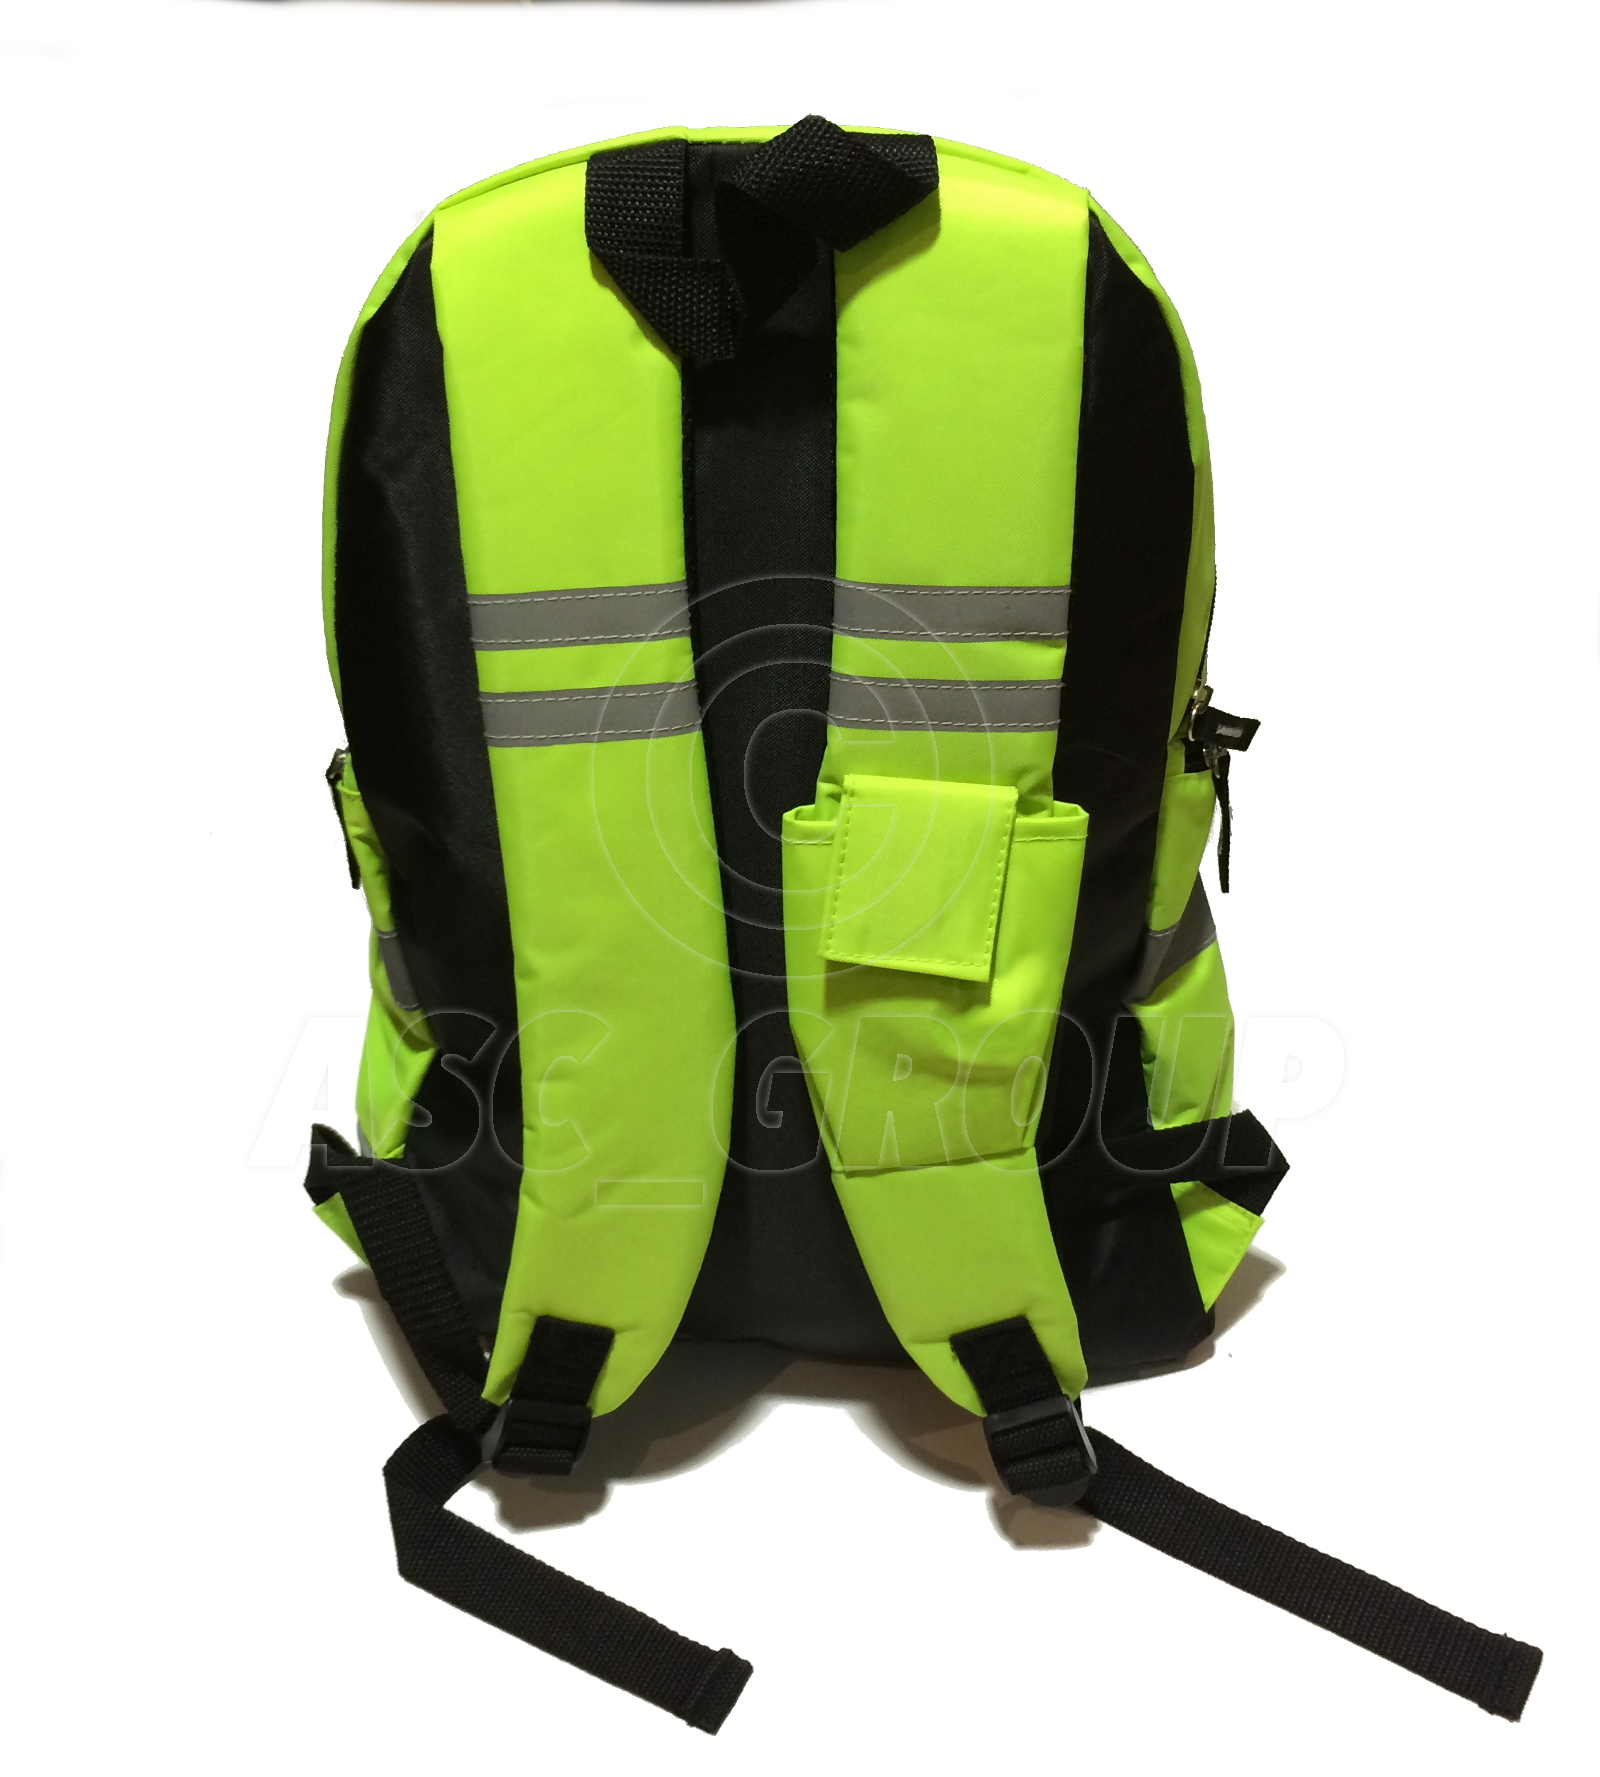 helm signalfarbe reflektierend rucksack rucksack schuhe fahrrad inklusive handy ebay. Black Bedroom Furniture Sets. Home Design Ideas